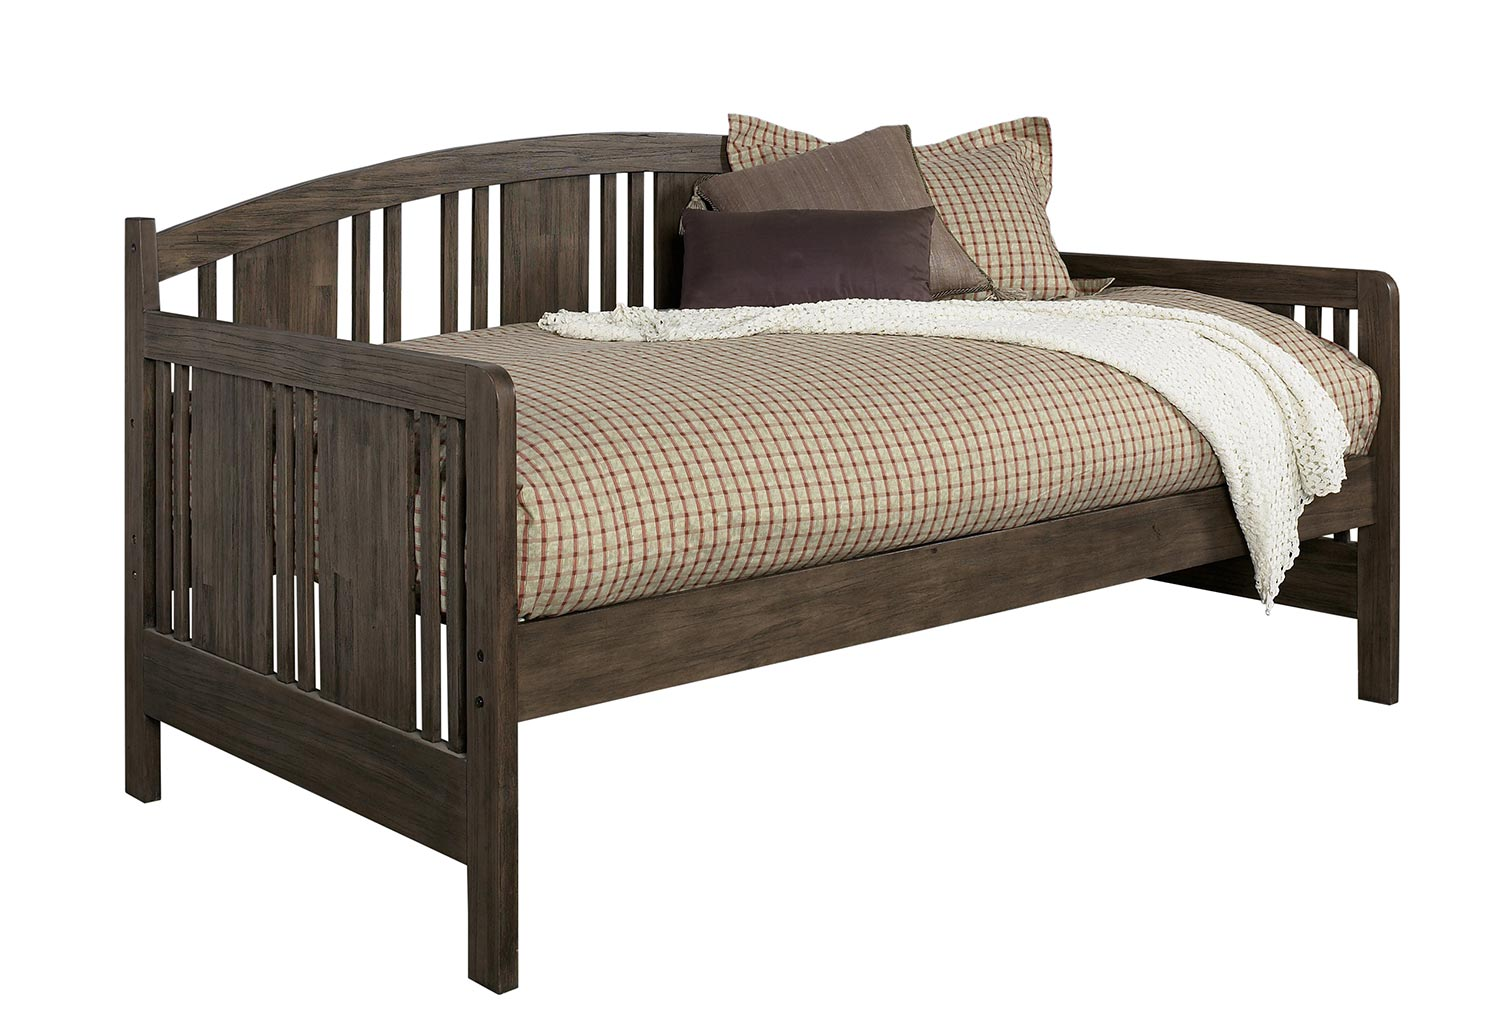 Hillsdale Dana Daybed - Brushed Acacia